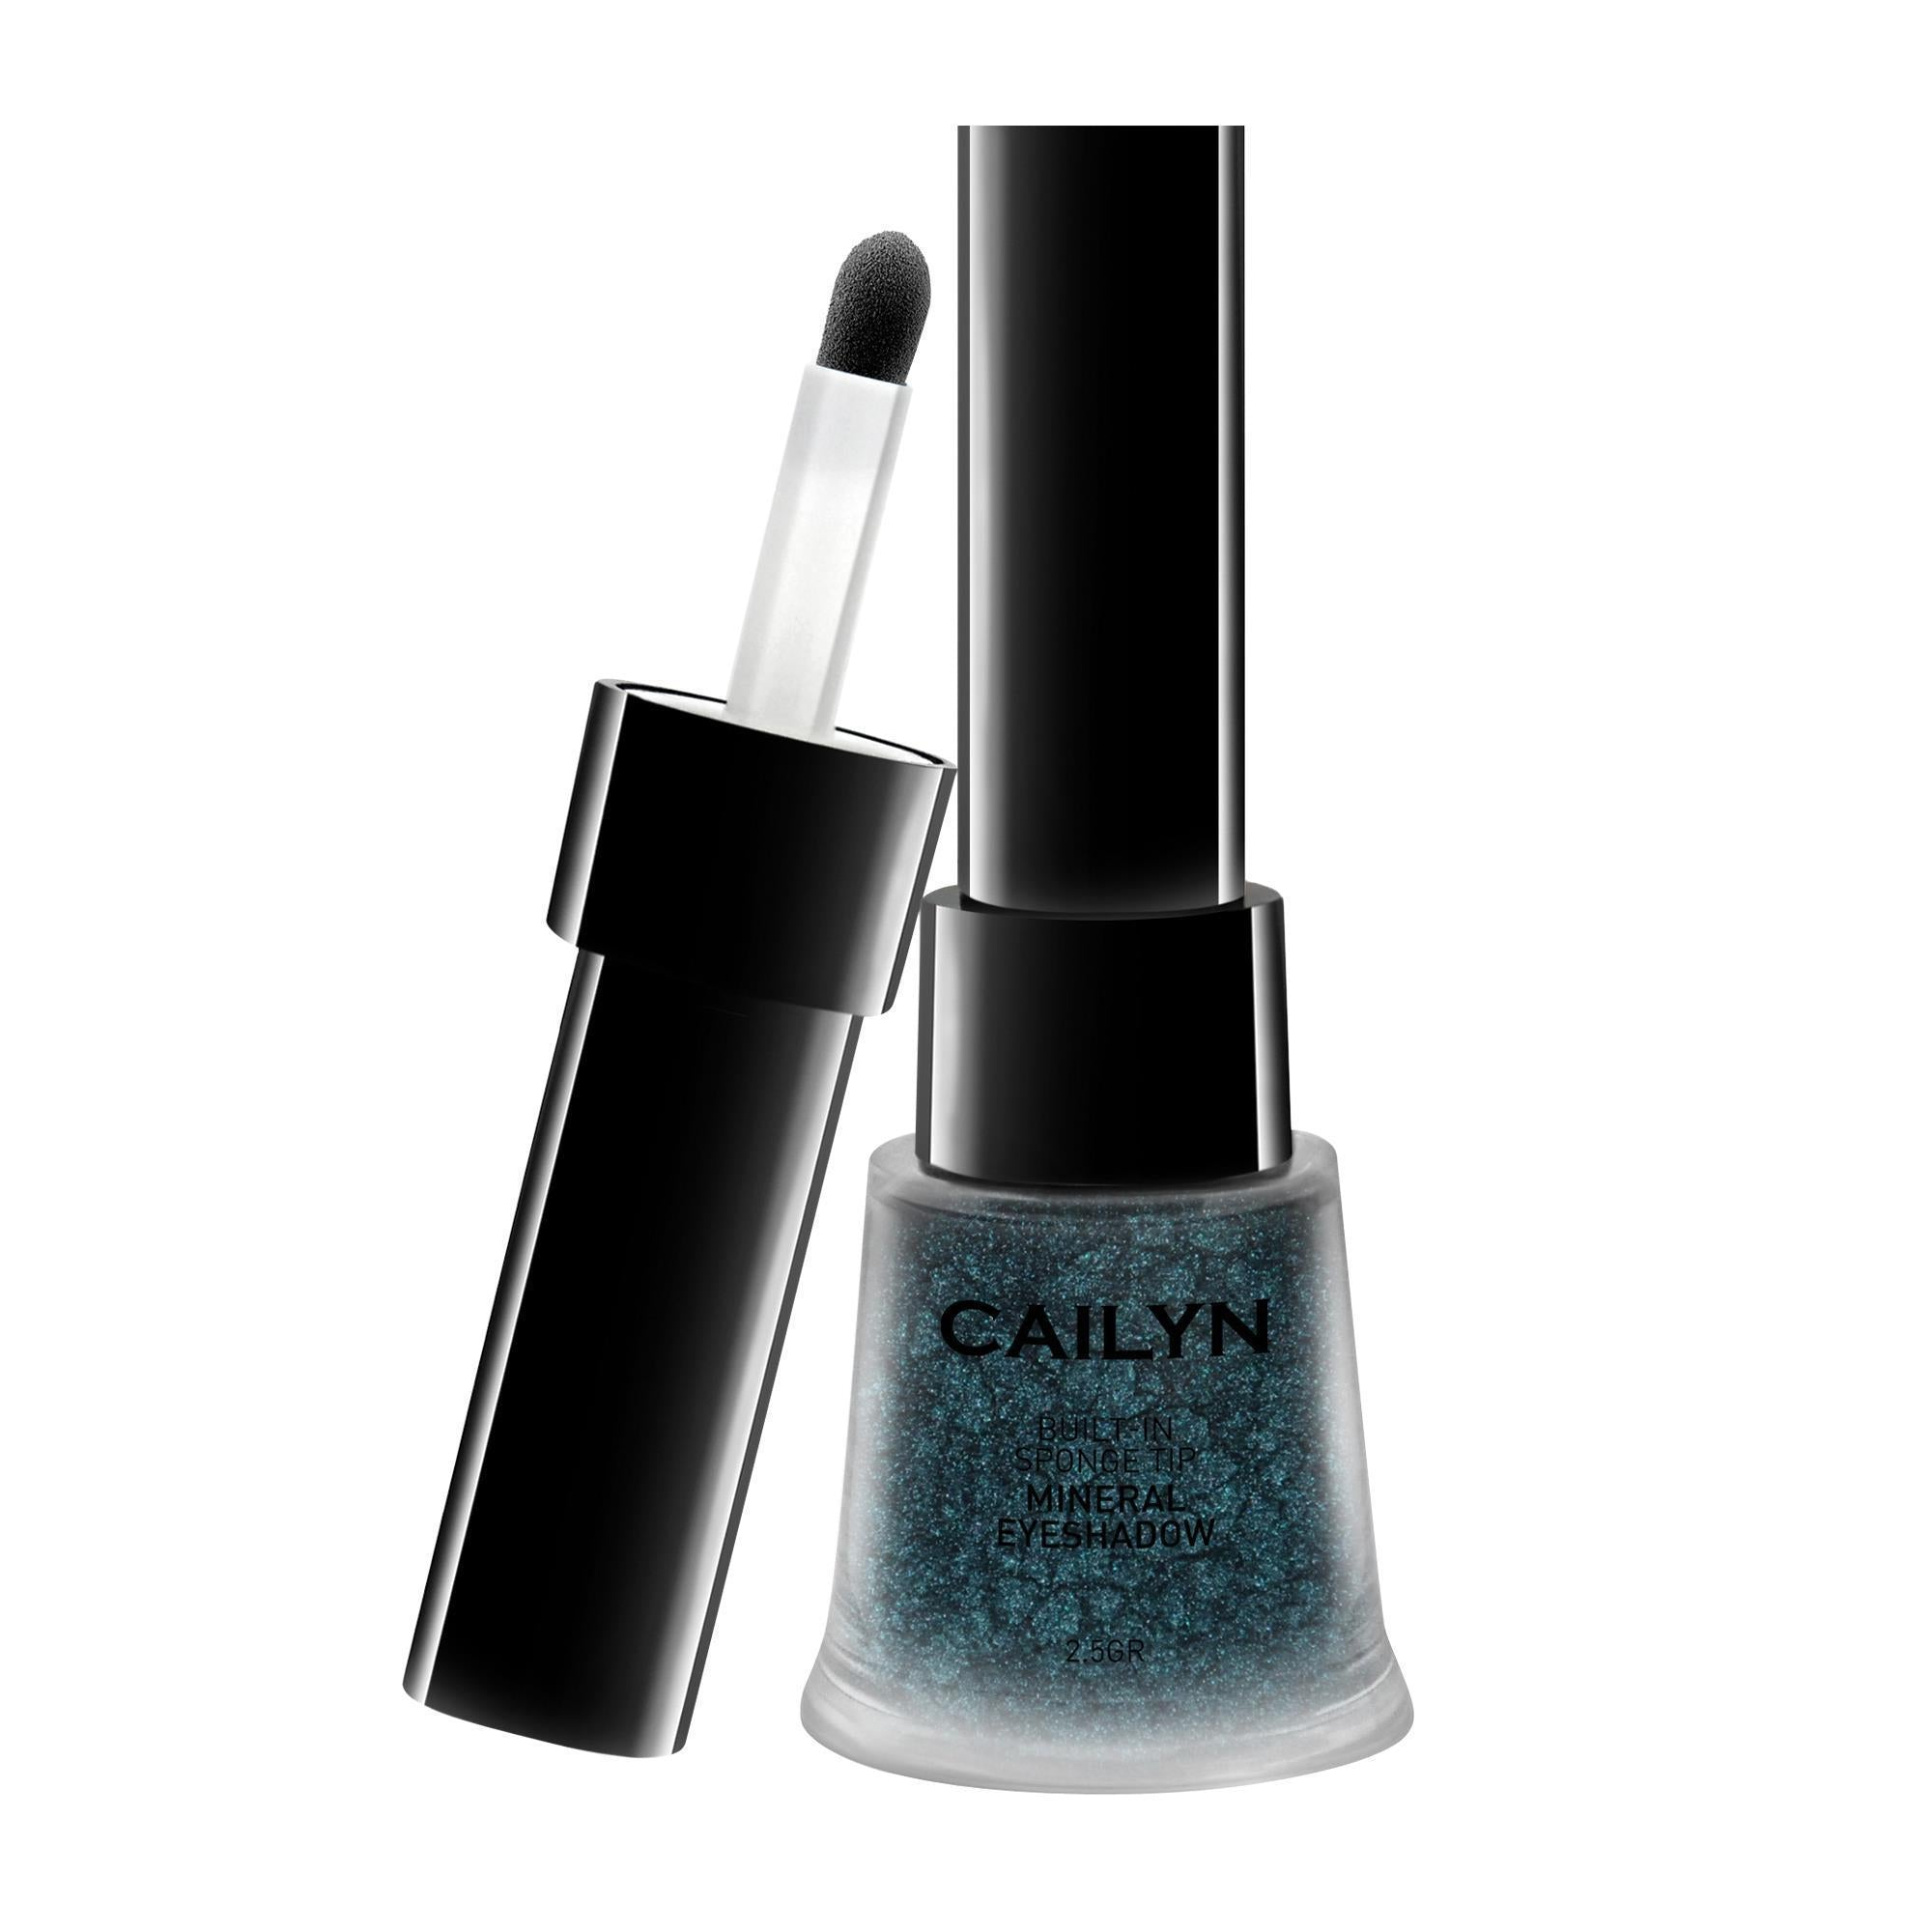 Makeup, Skin & Personal Care Dark Sky Cailyn Mineral Eye Polish / Built-In Sponge Tip